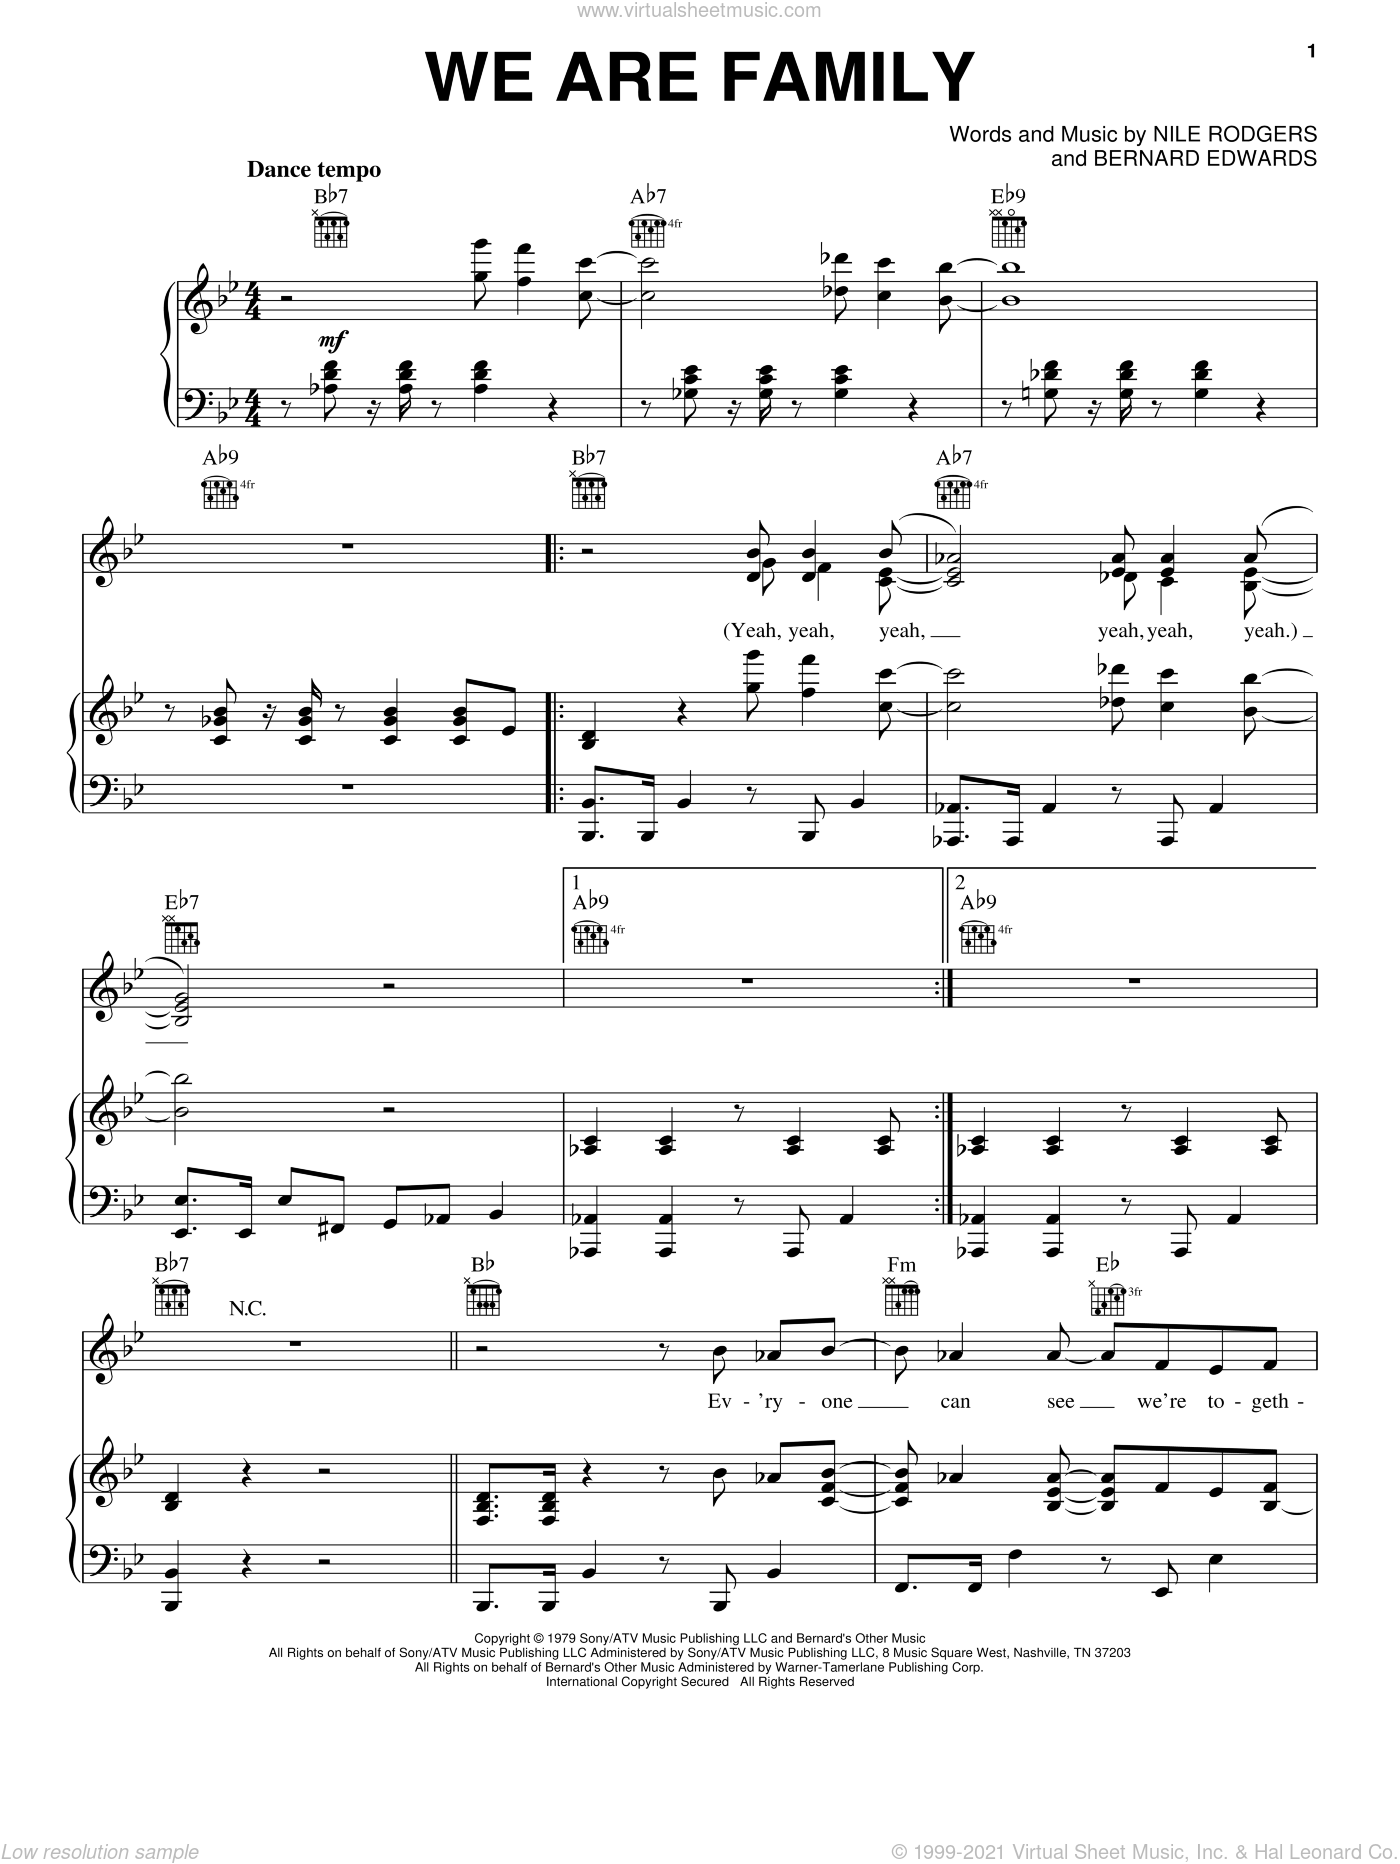 We Are Family sheet music for voice, piano or guitar by Sister Sledge, Alvin And The Chipmunks: The Squeakquel (Movie), Jump5, Bernard Edwards and Nile Rodgers, intermediate skill level